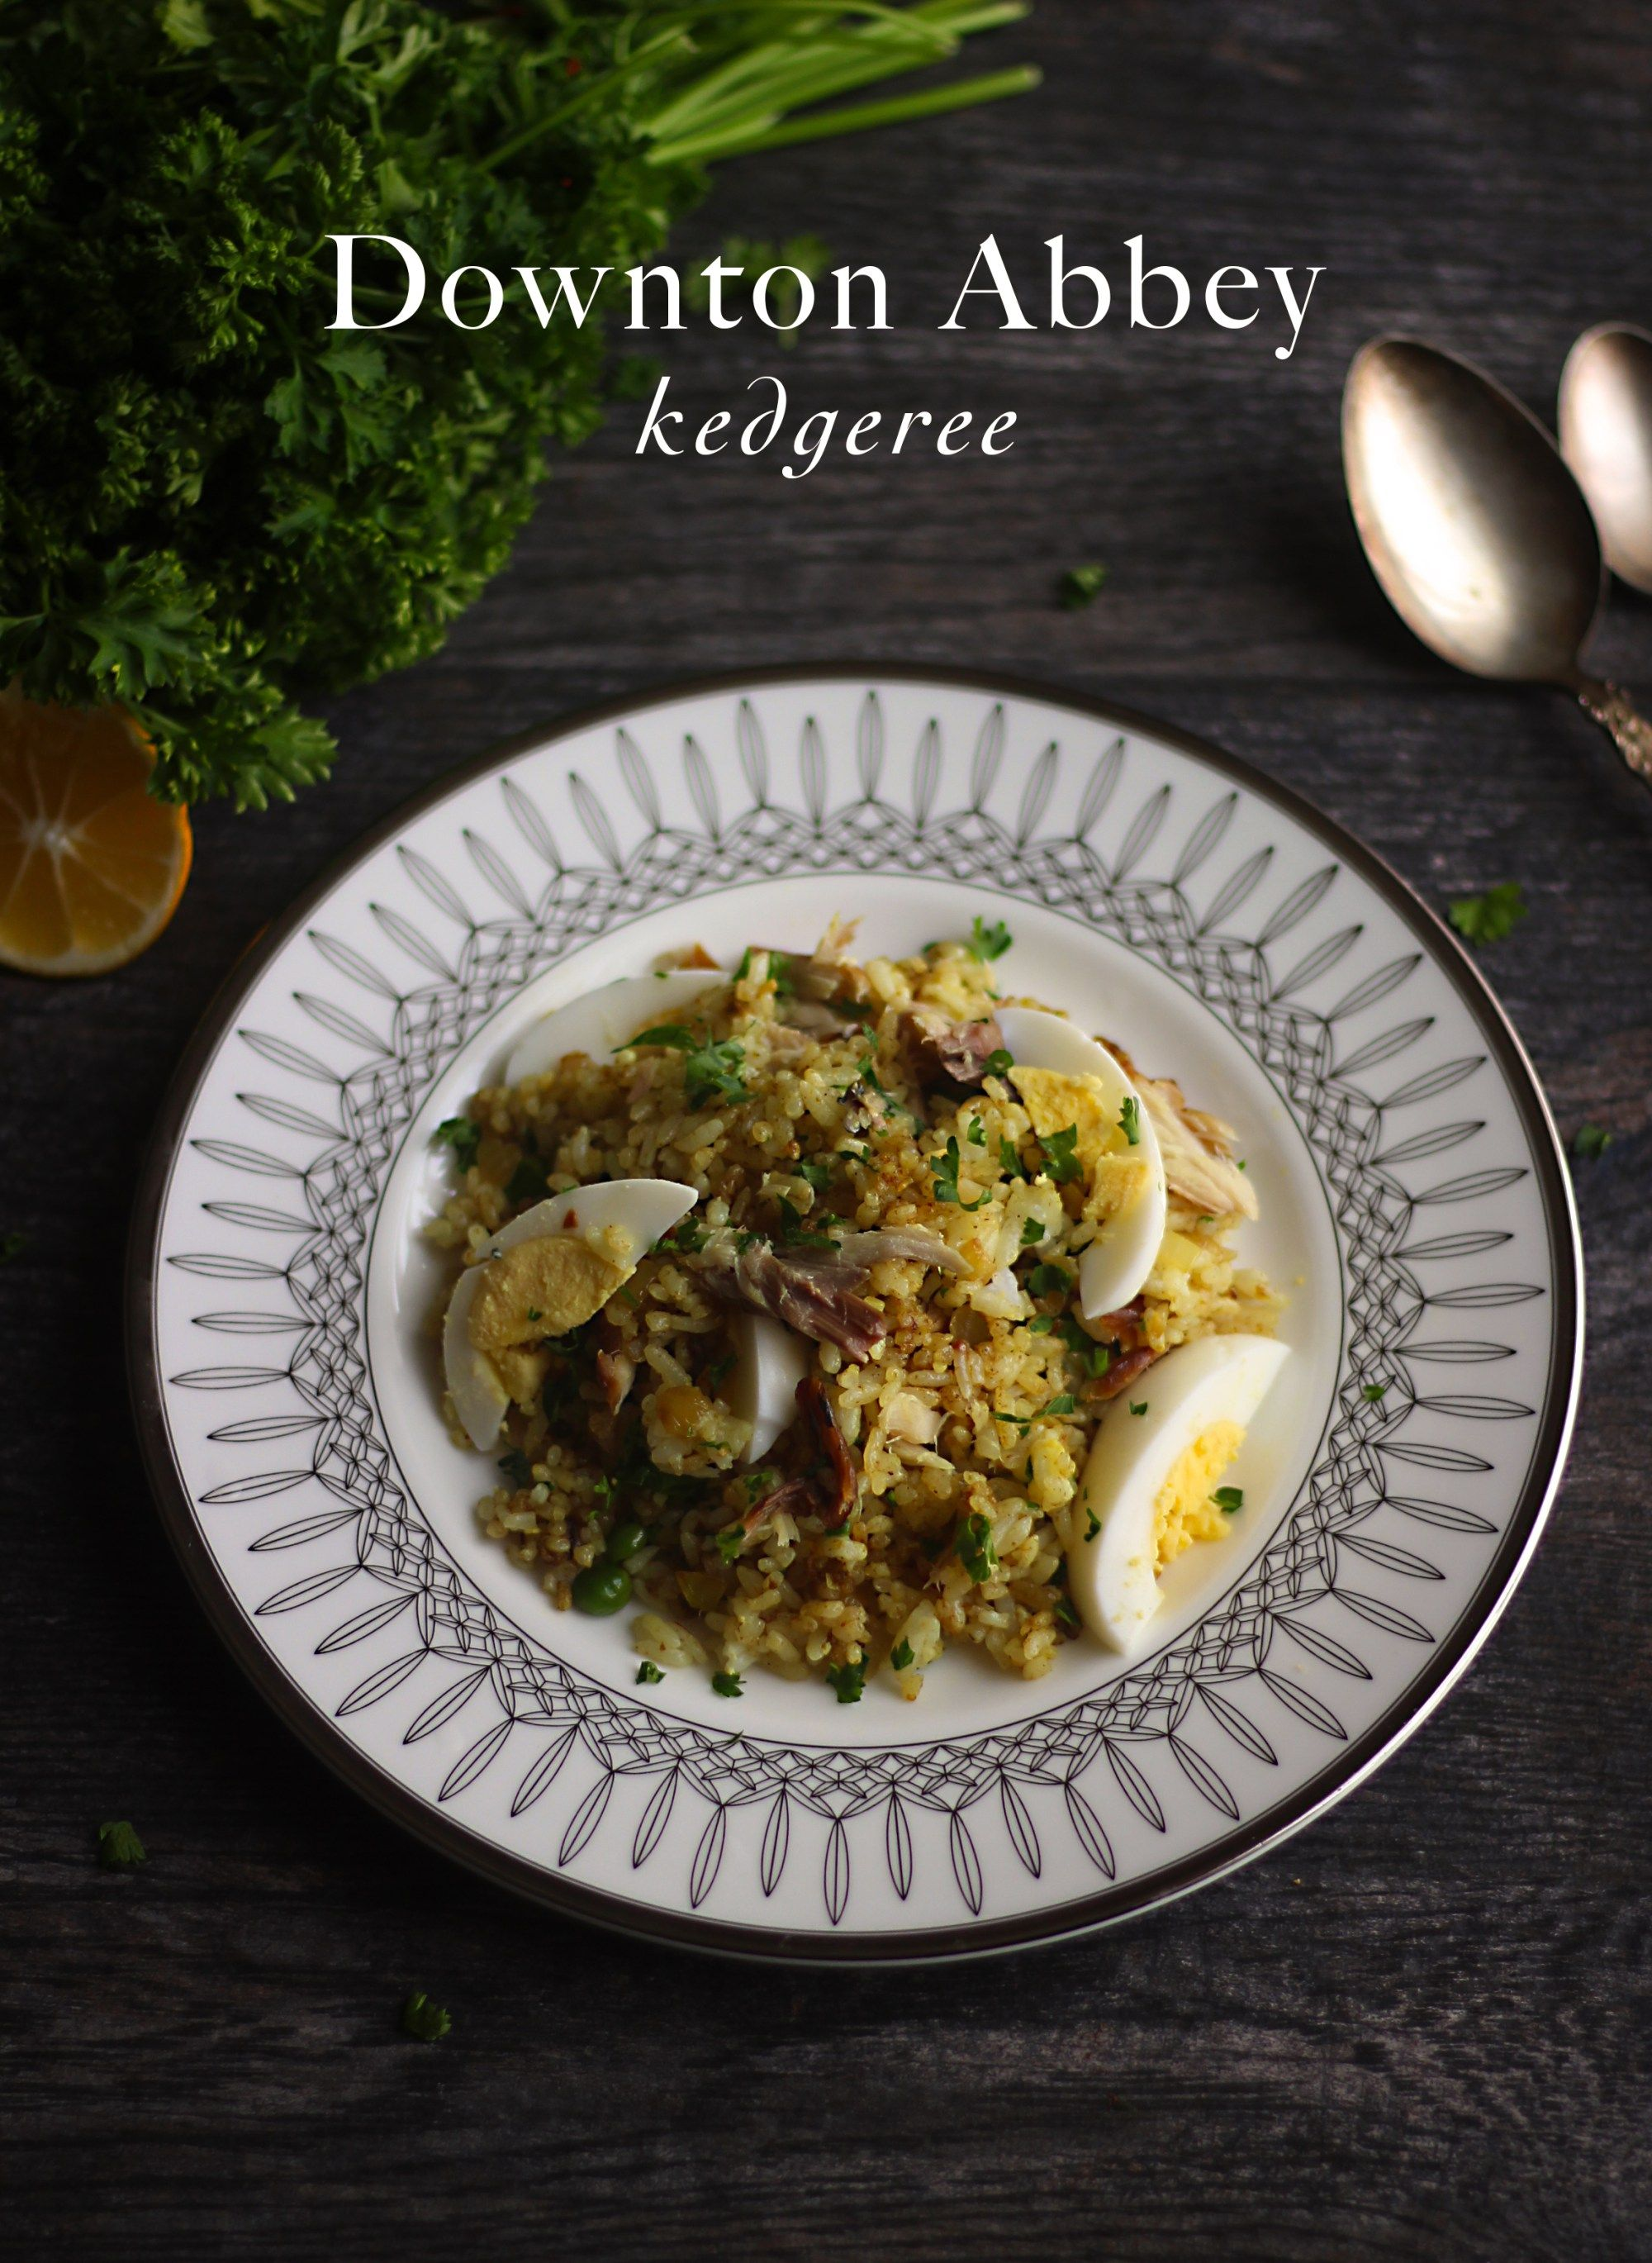 Recipe on how to make kedgeree from mrs patmore in downton abbey recipe forumfinder Gallery